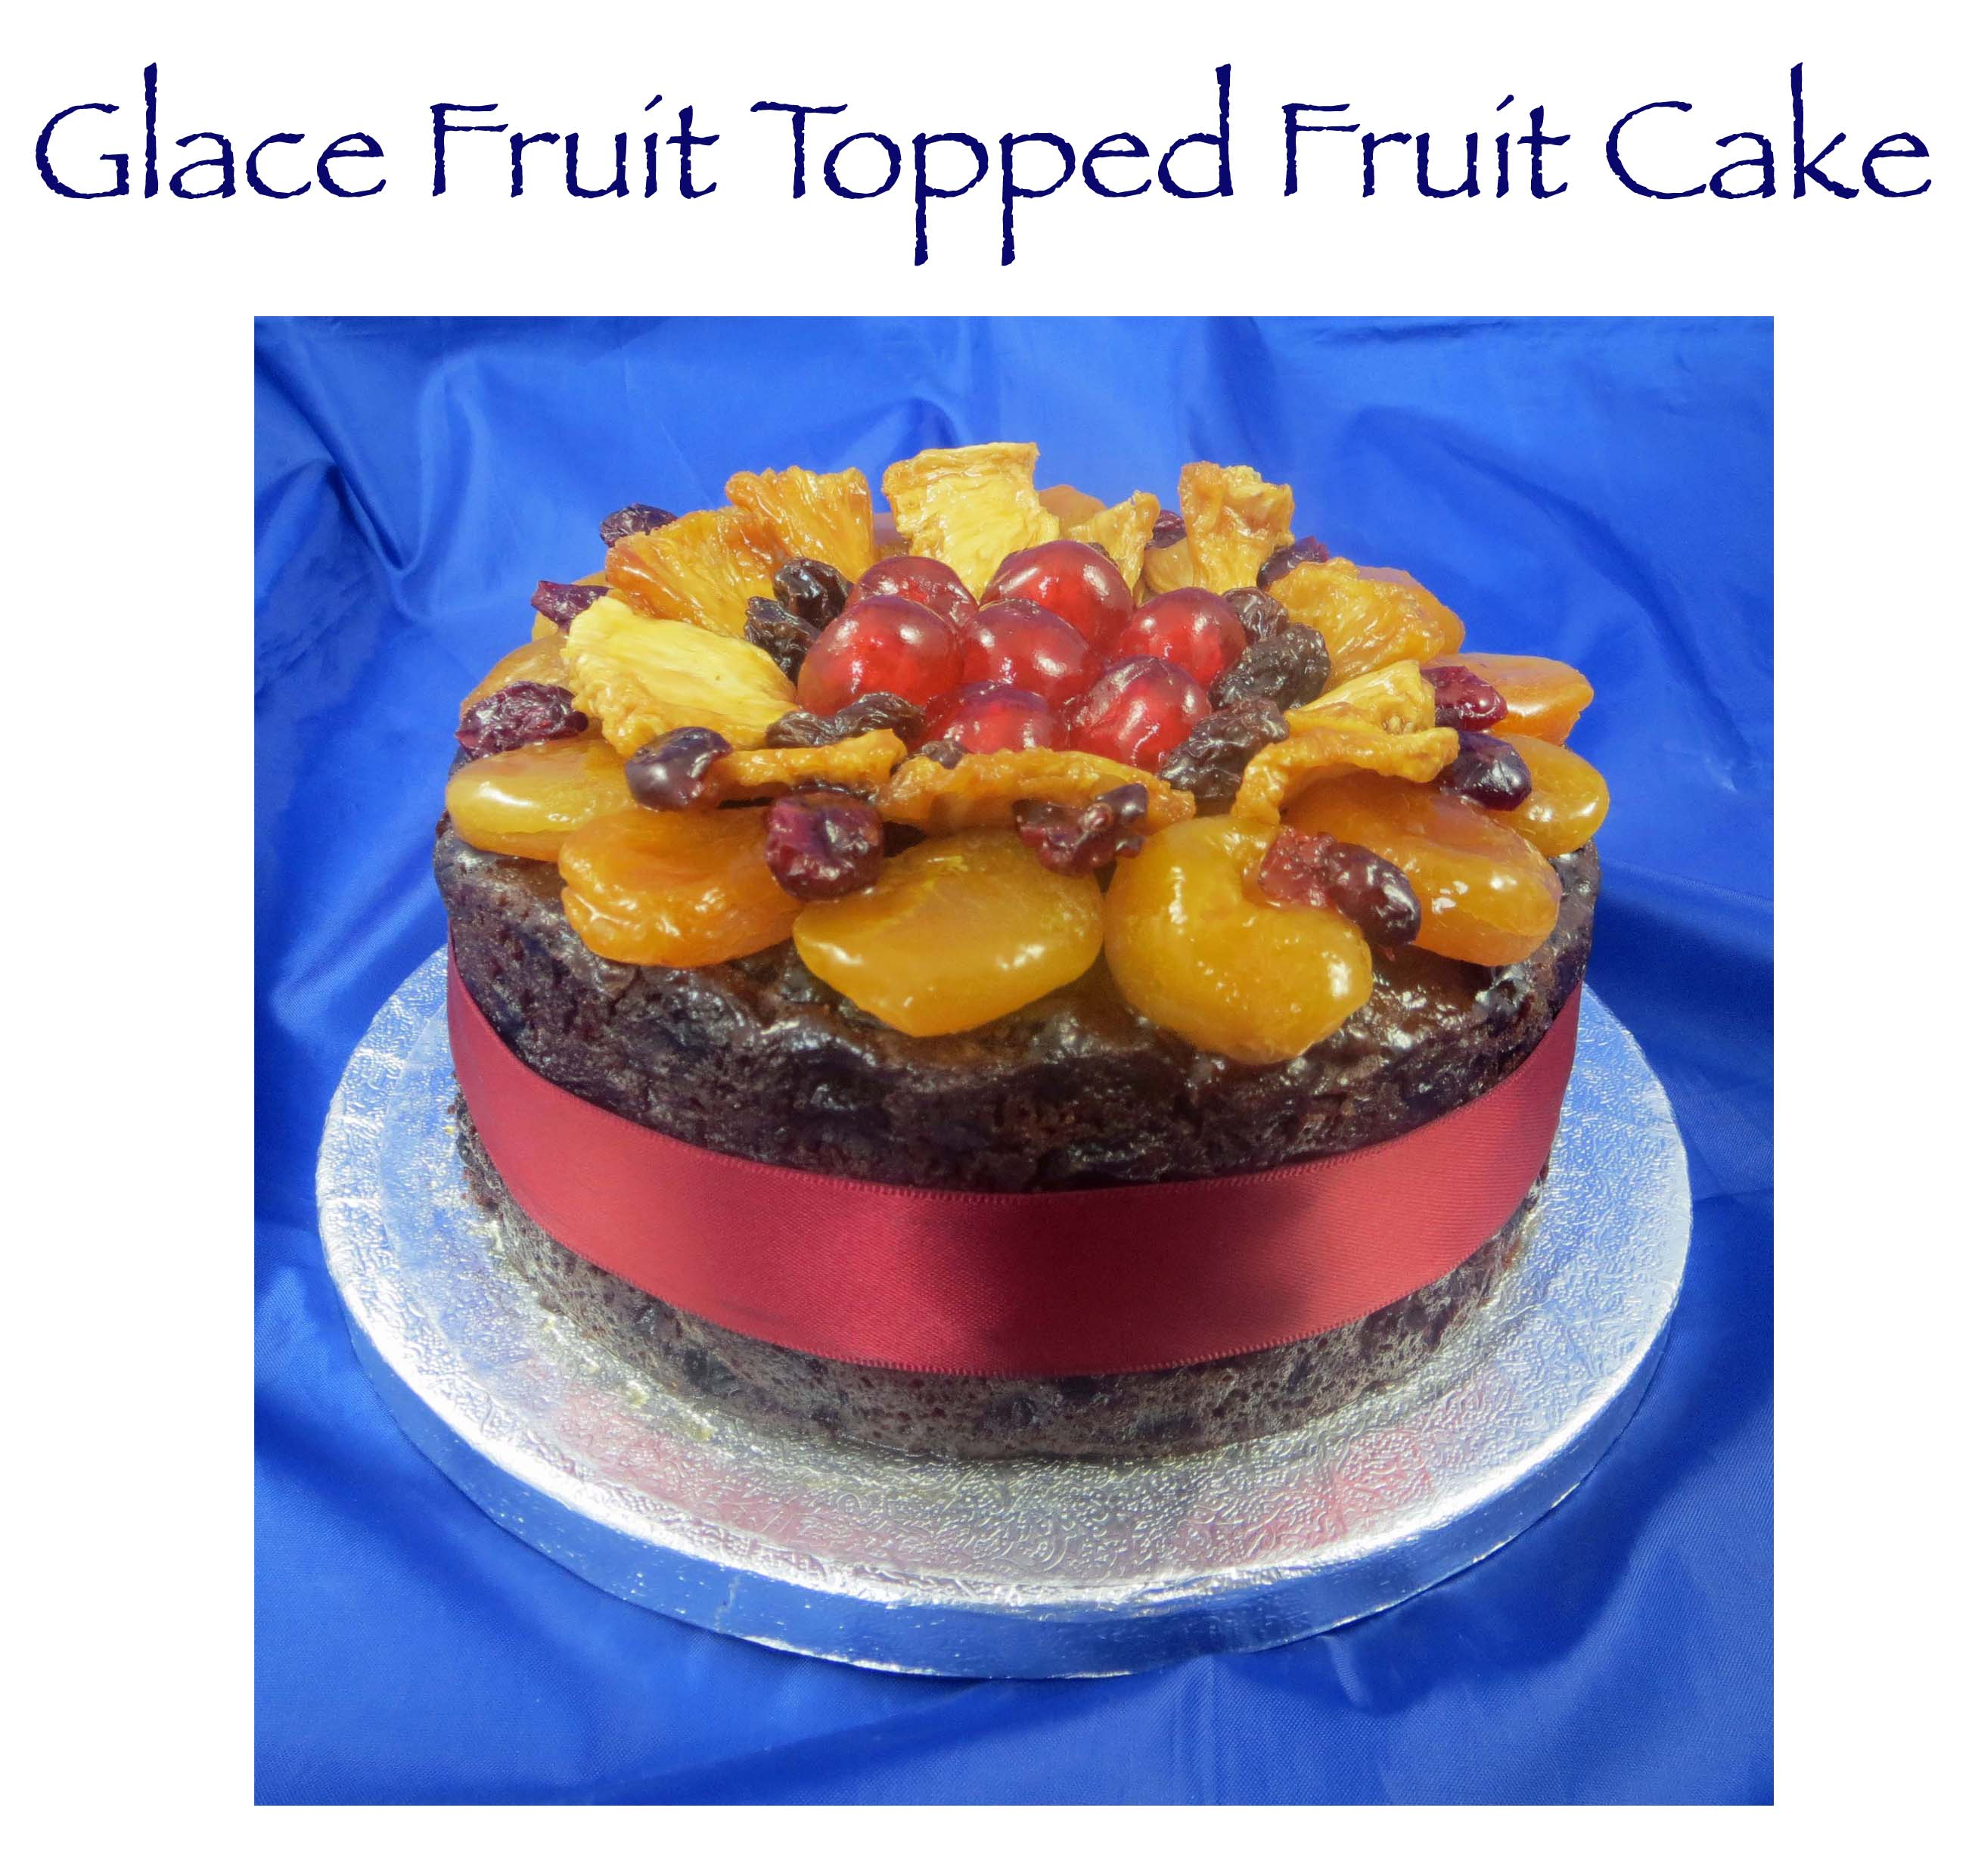 Glace Fruit Topped Fruit Cake